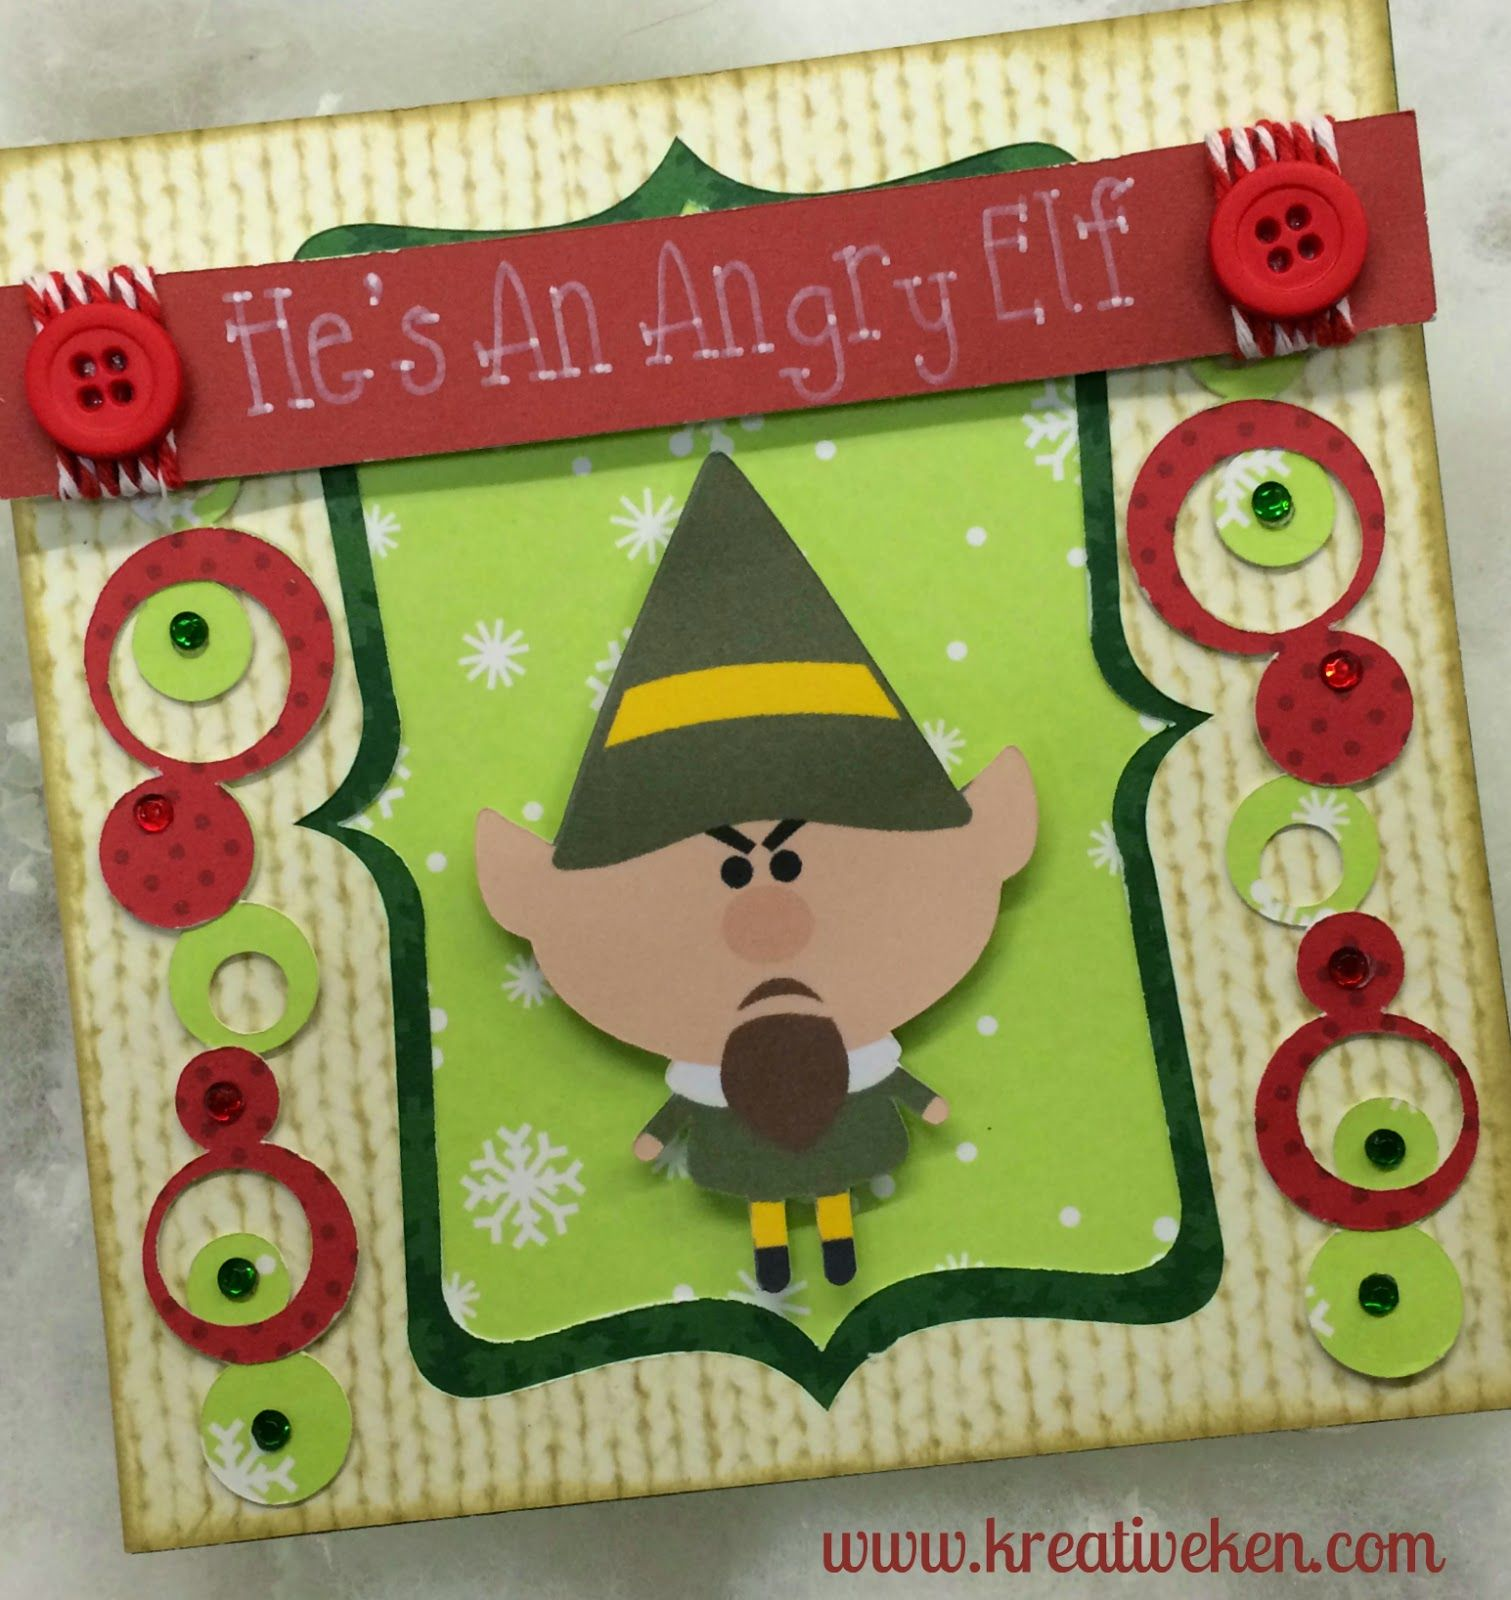 Kens Kreations Hes An Angry Elf Cricut Christmas Cards And